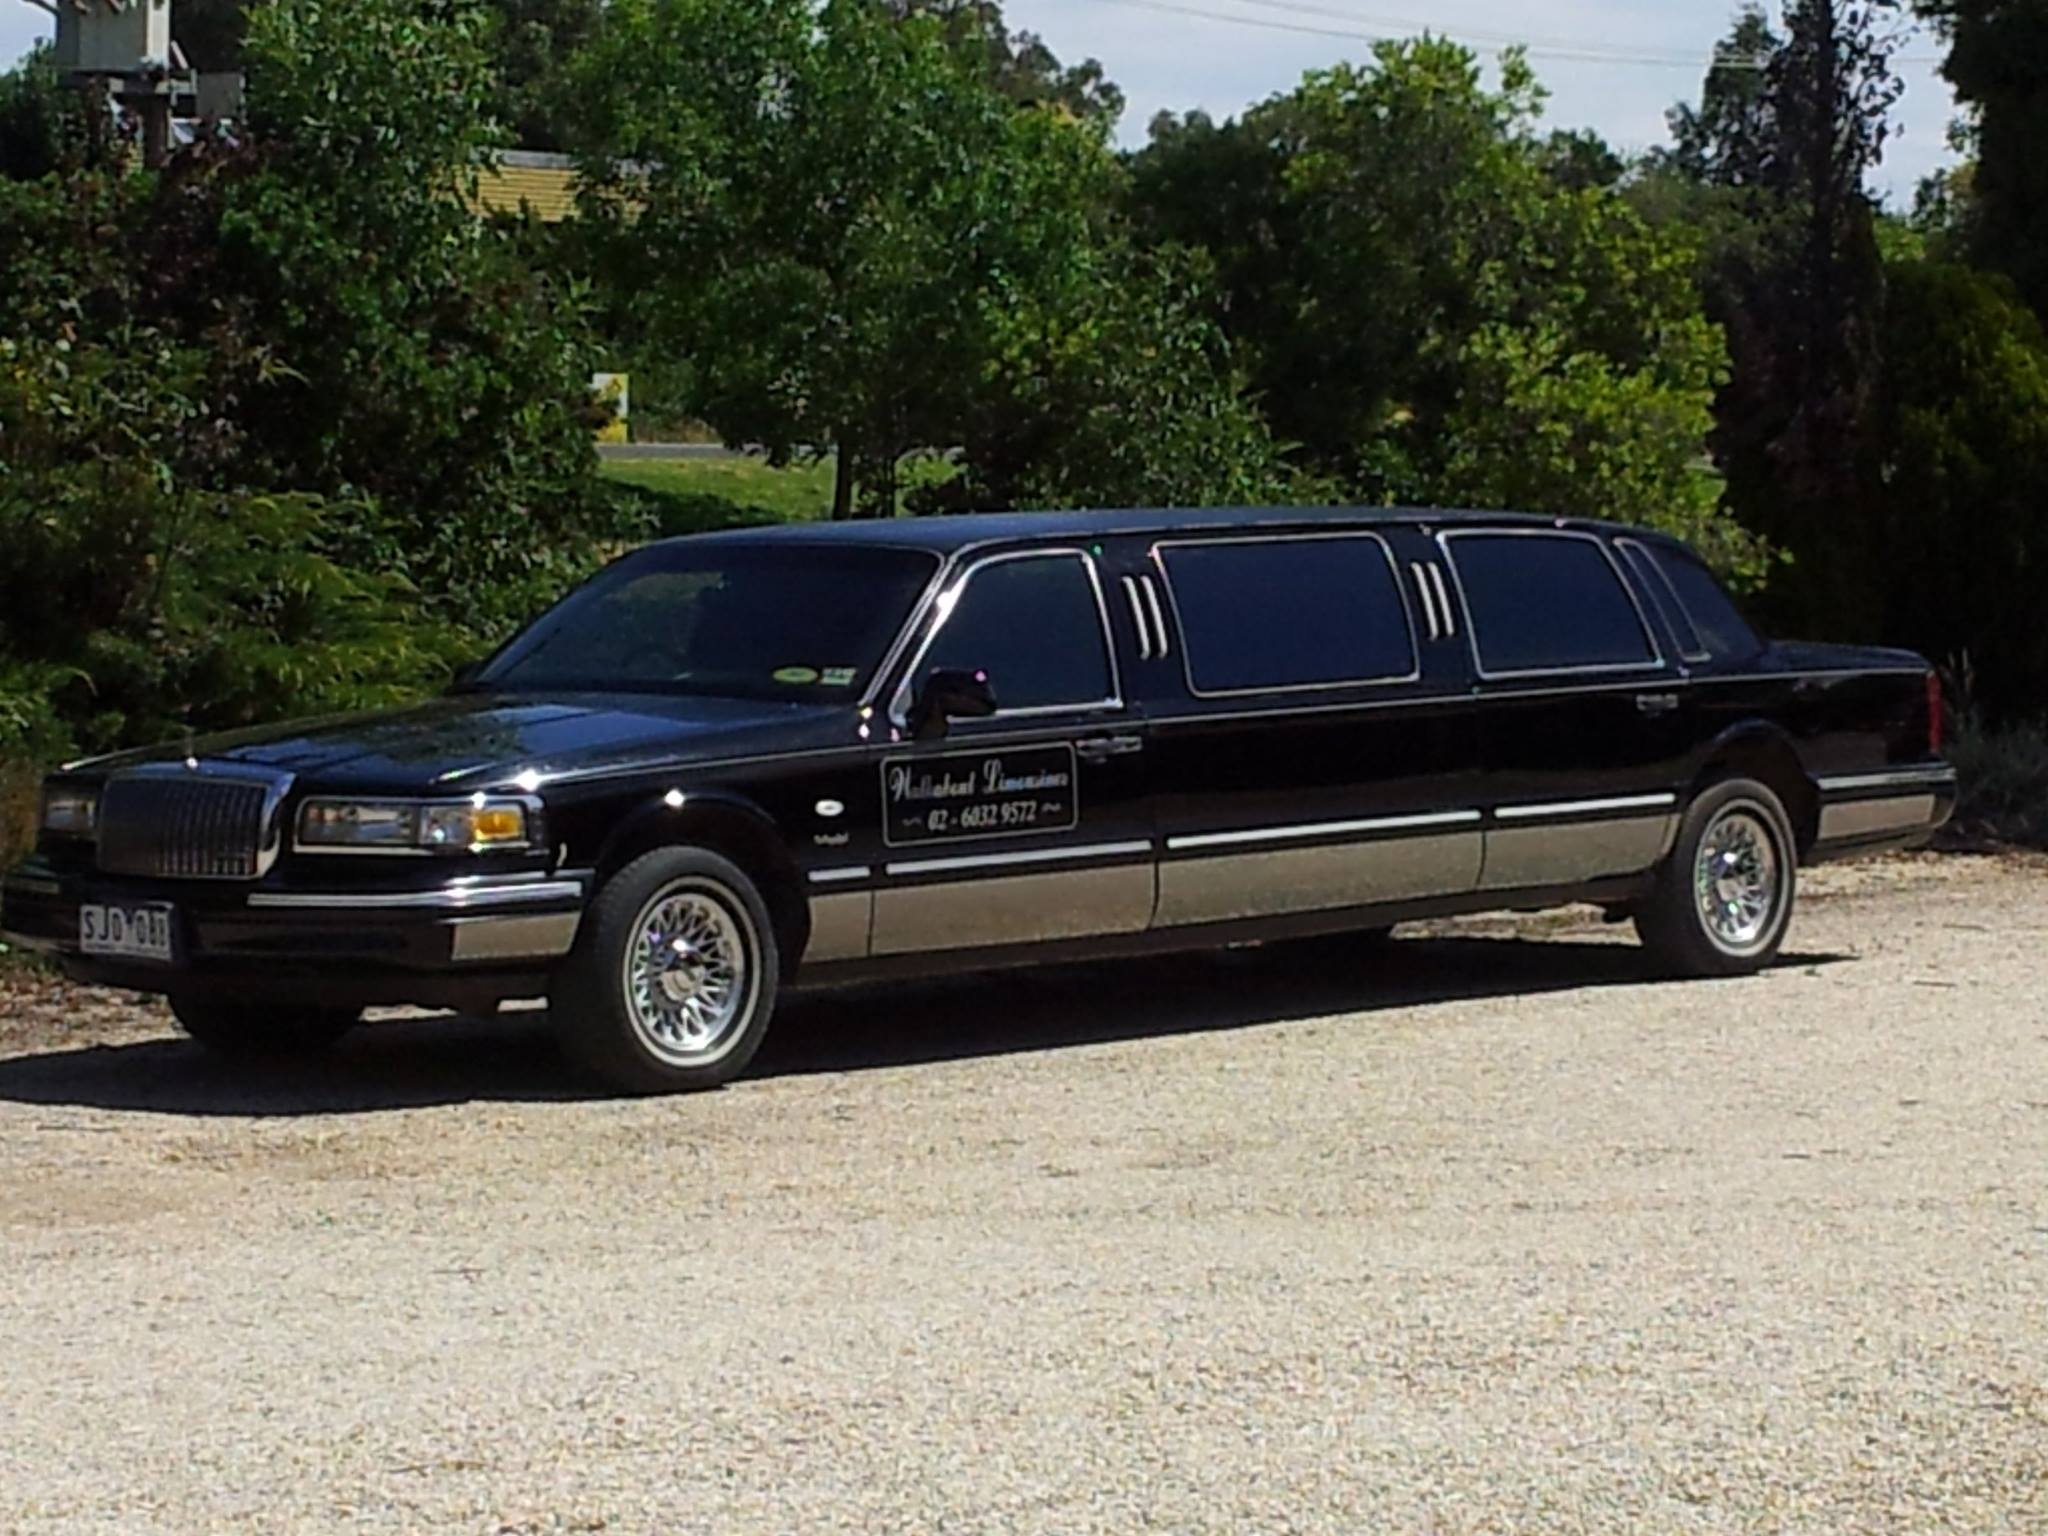 Walkabout limo.jpg